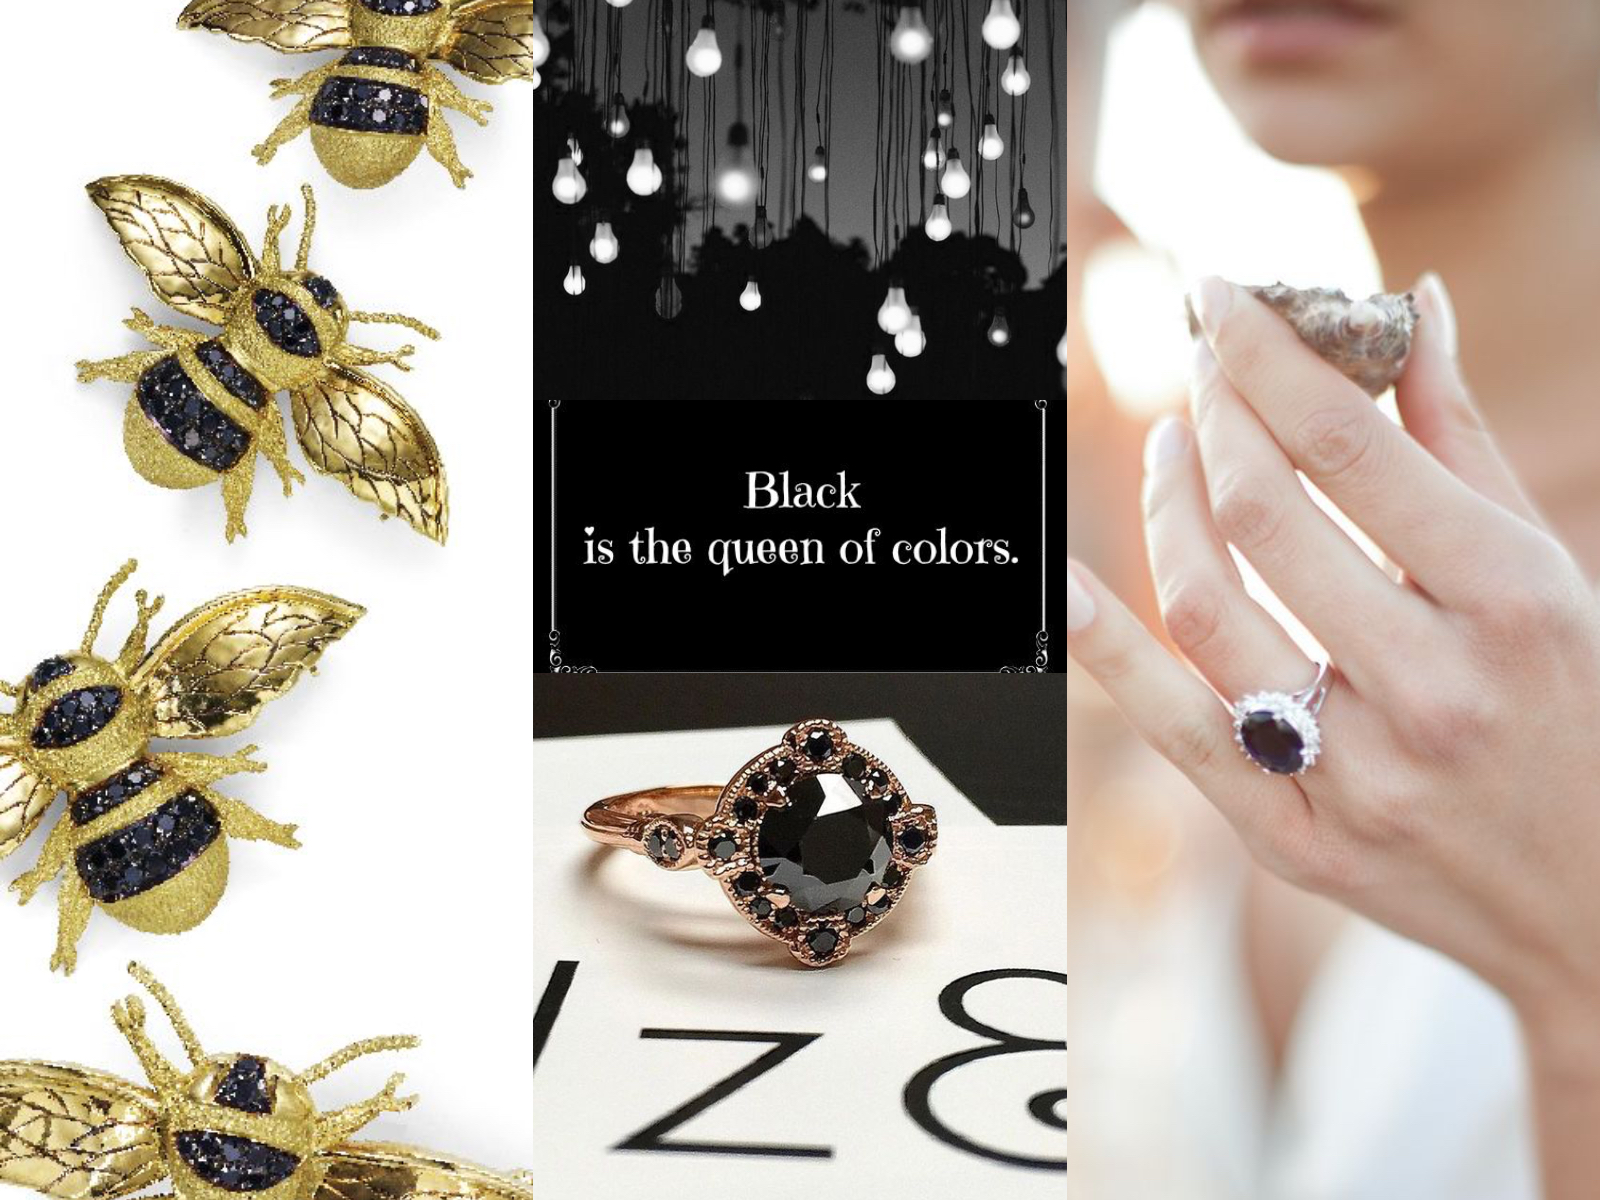 753d341ee Research into the colour and formation of black diamonds is still  relatively new. In general there are two main types of black diamonds; each  demanding ...